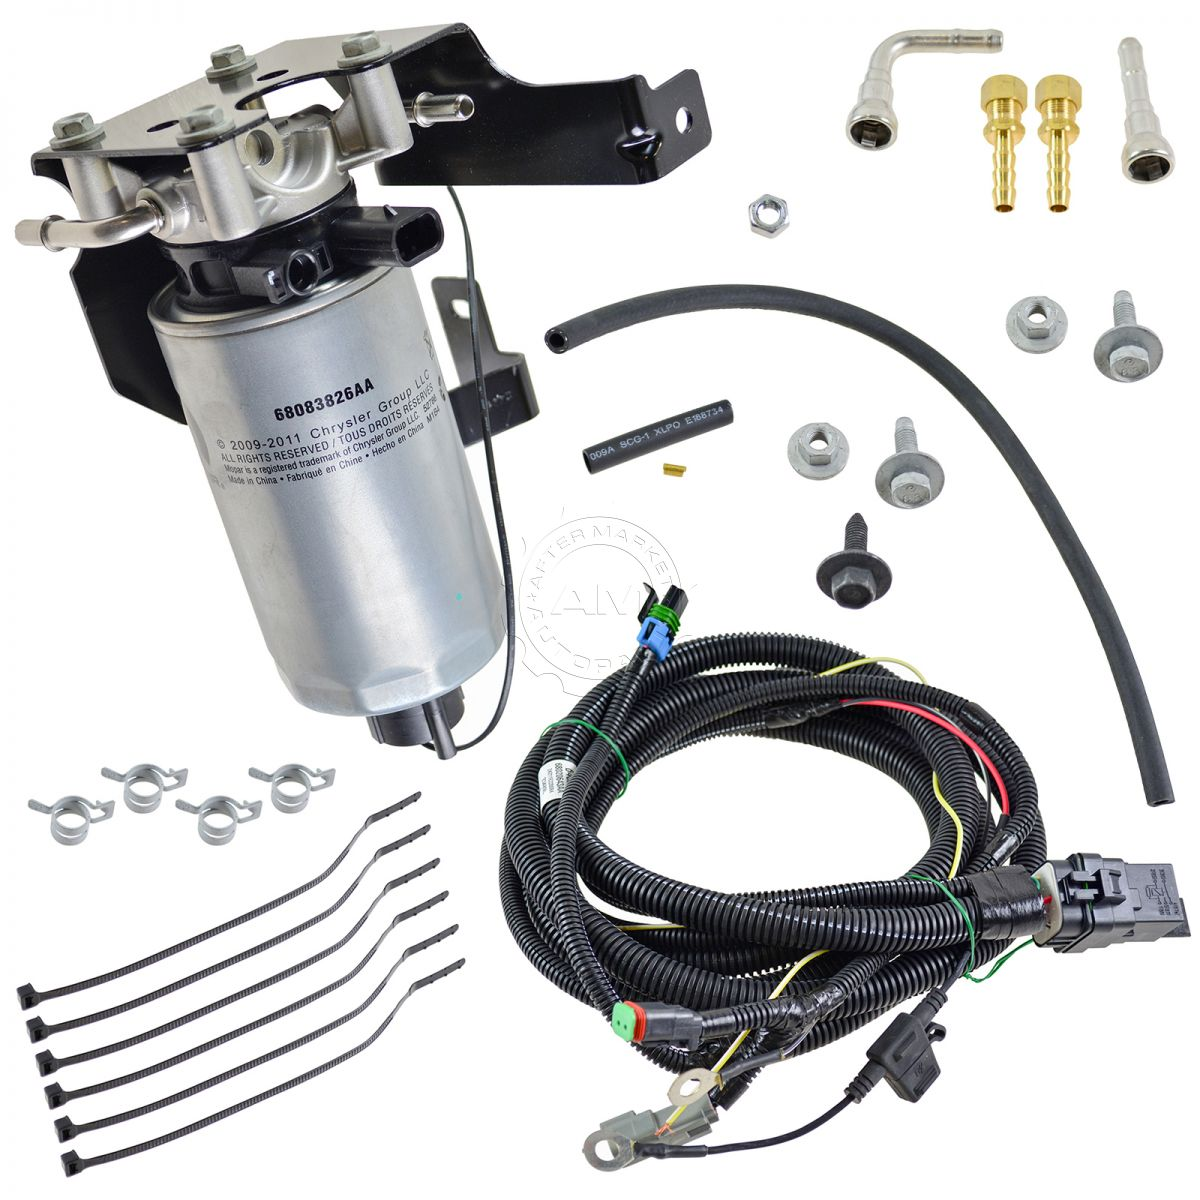 2003 Dodge Ram Fuel Filter Location Oem Severe Duty Add On System Kit For Diesel New 1200x1200